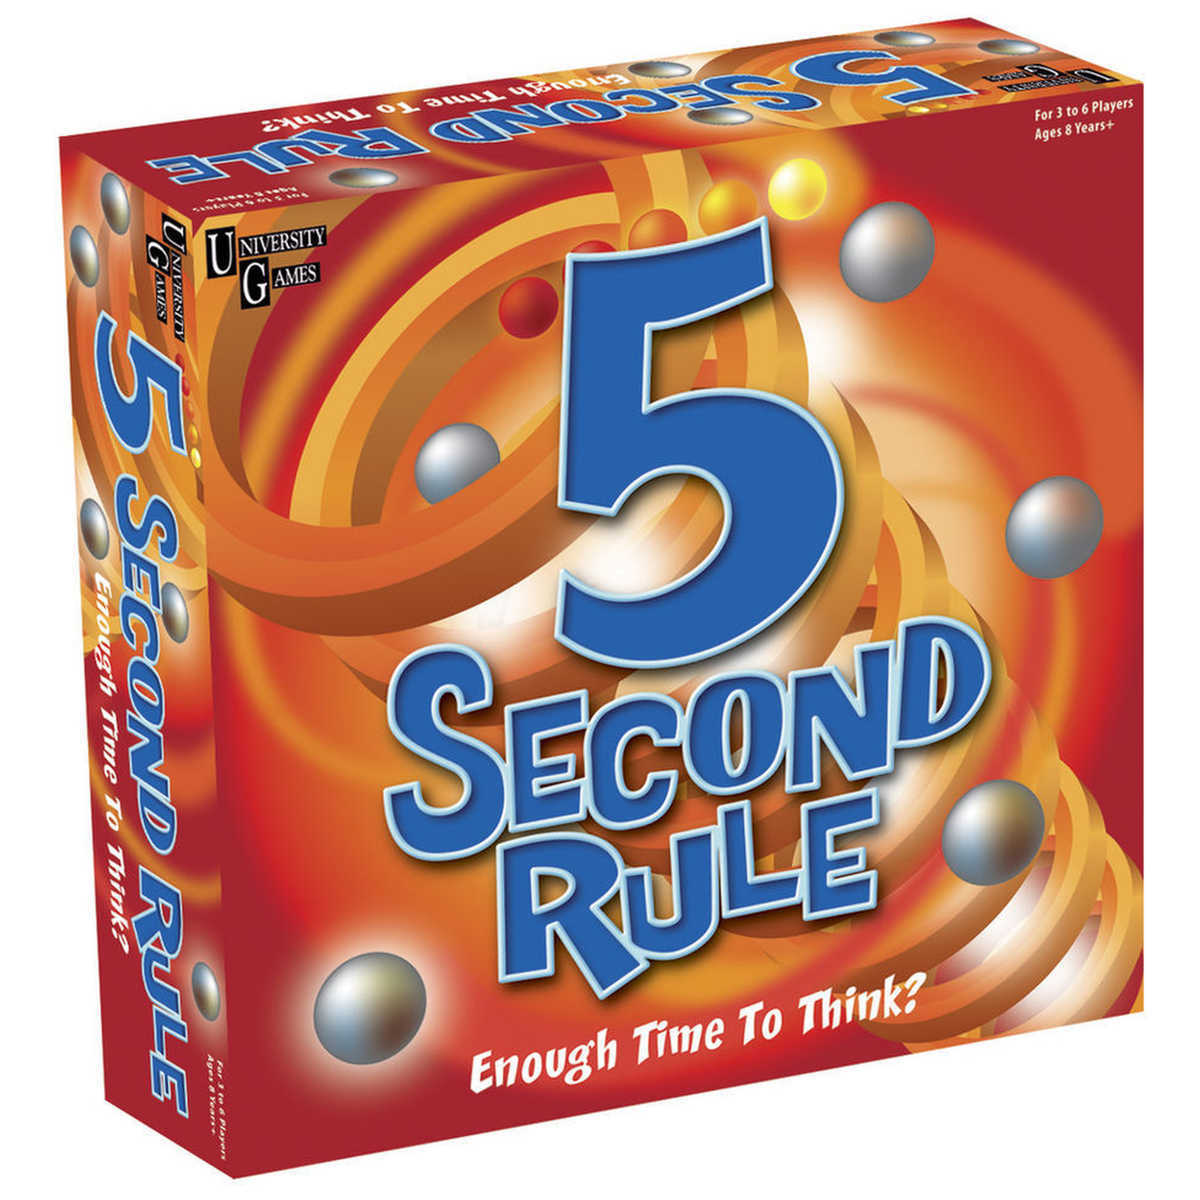 5 Second Rule image